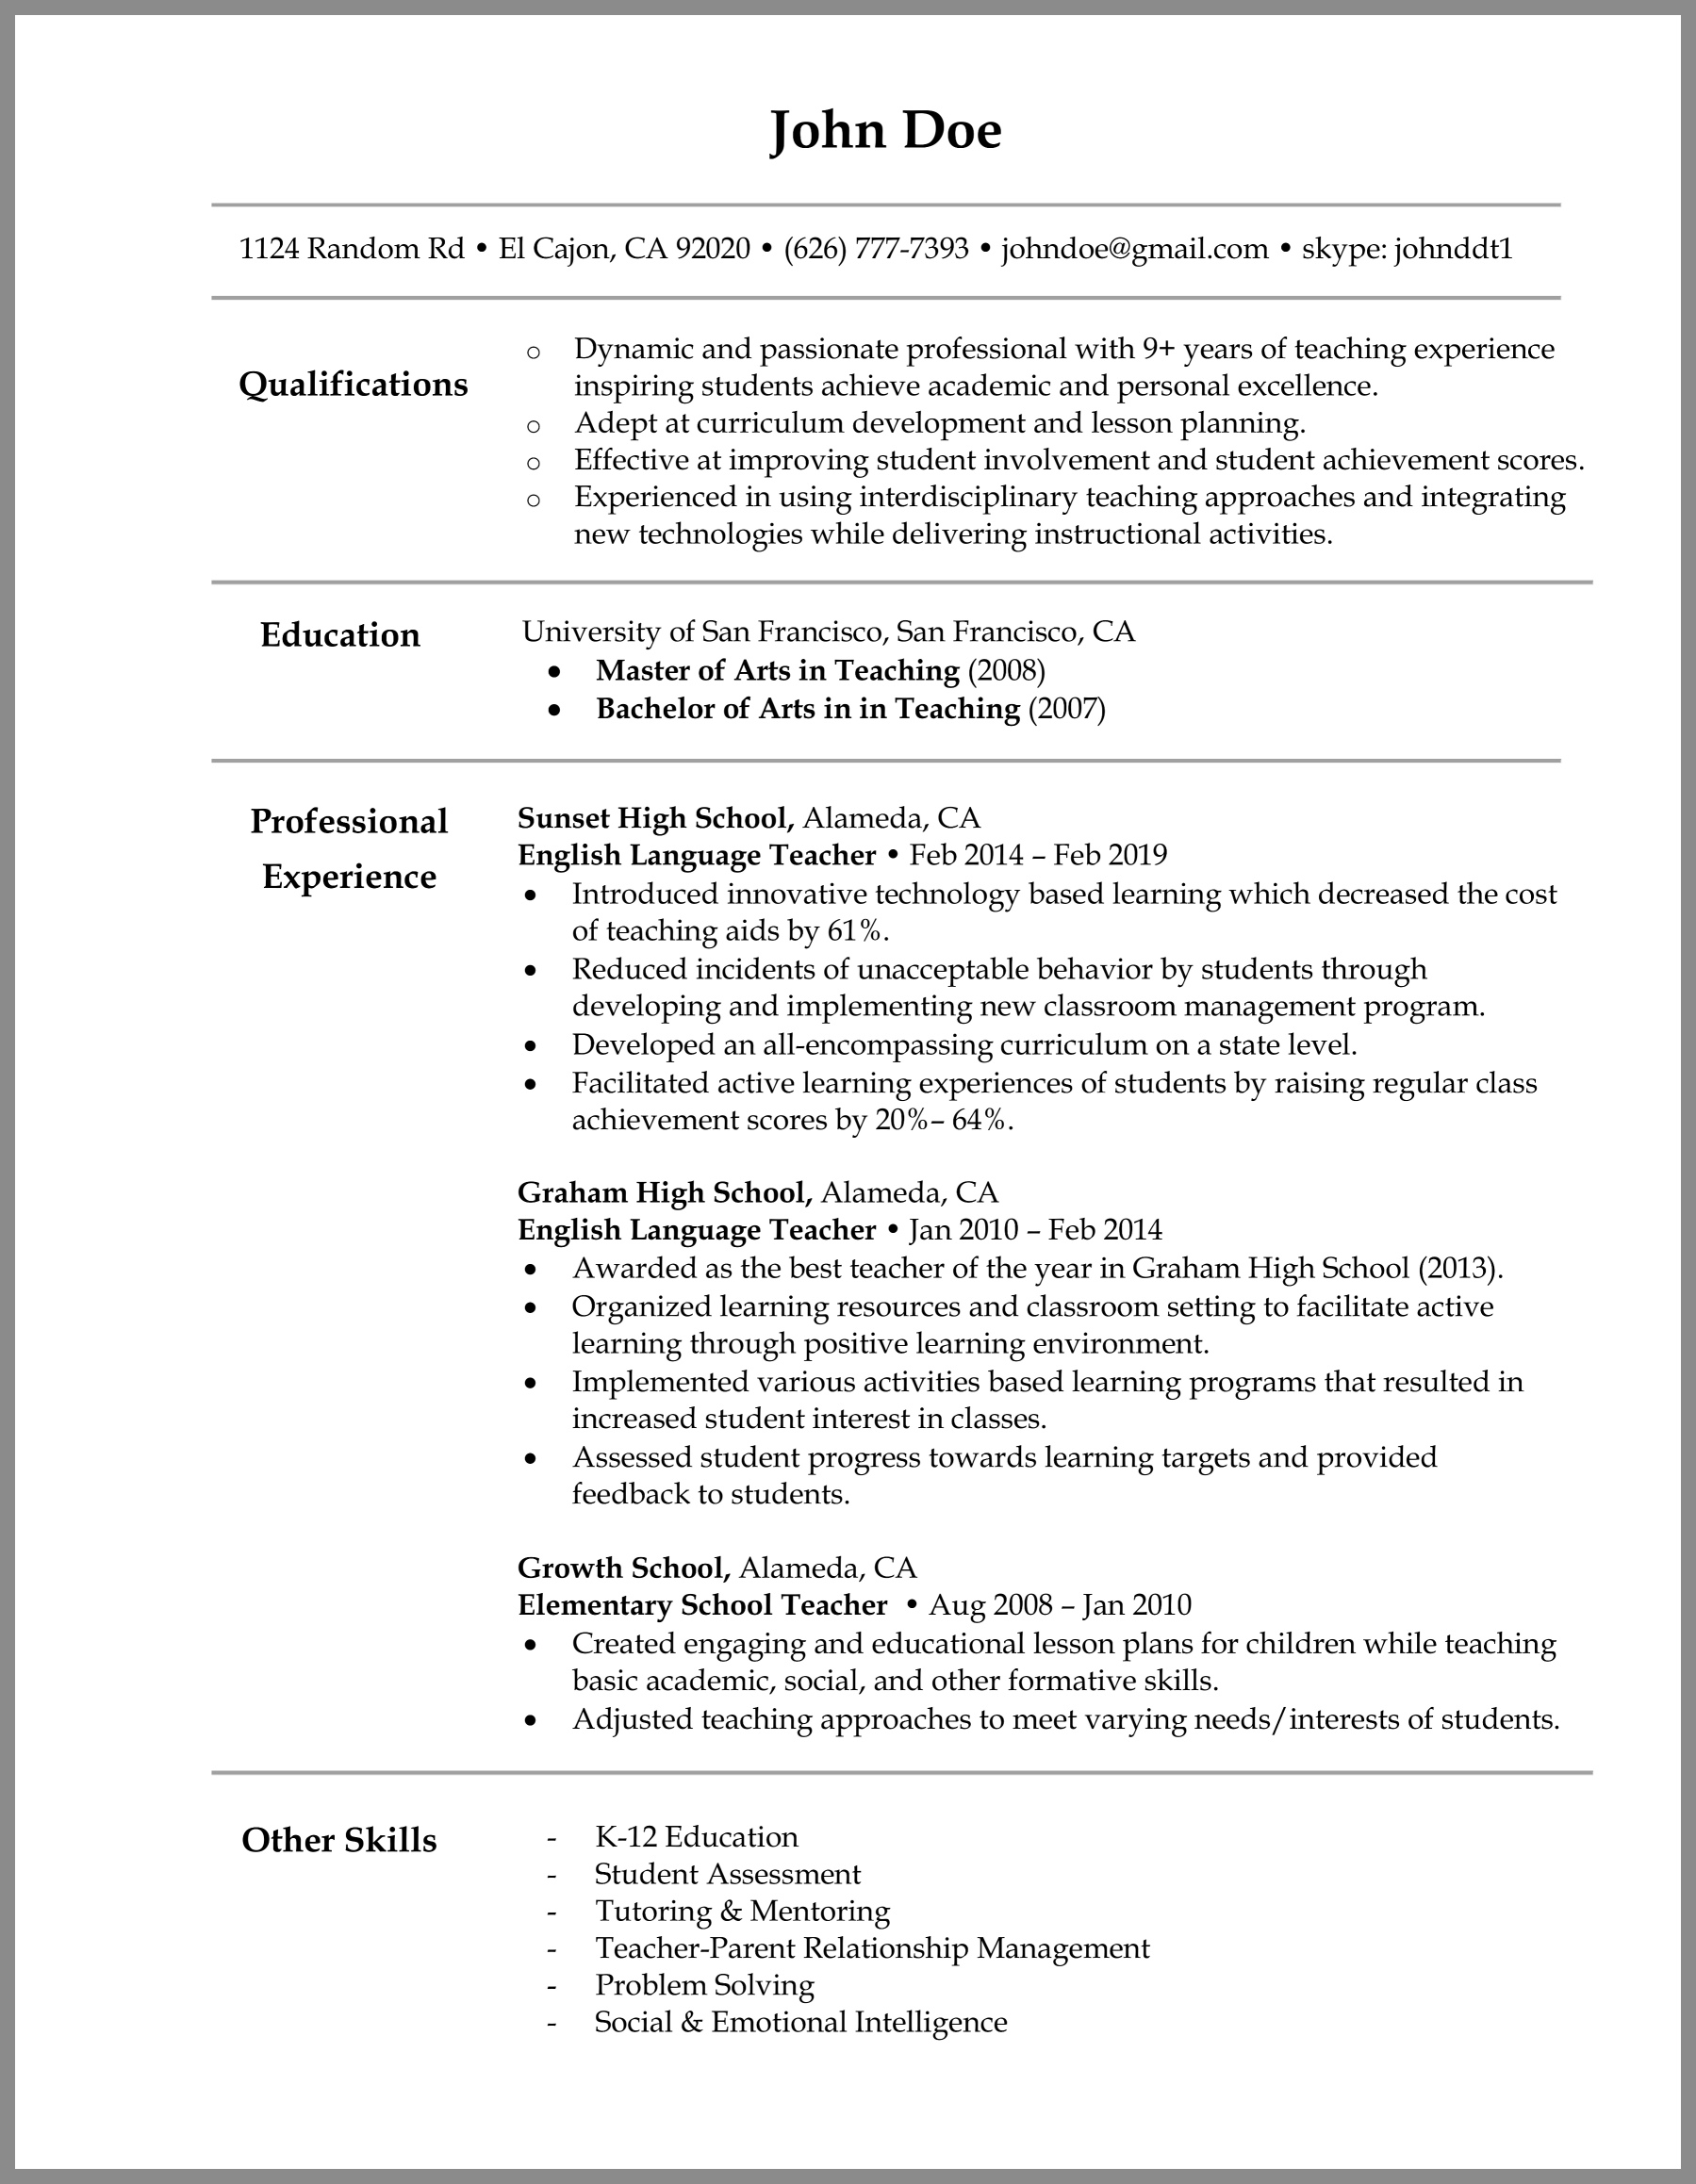 Esol Tutor Cover Letter | Friday Update 10 13 14 In The Weeks Ahead ...